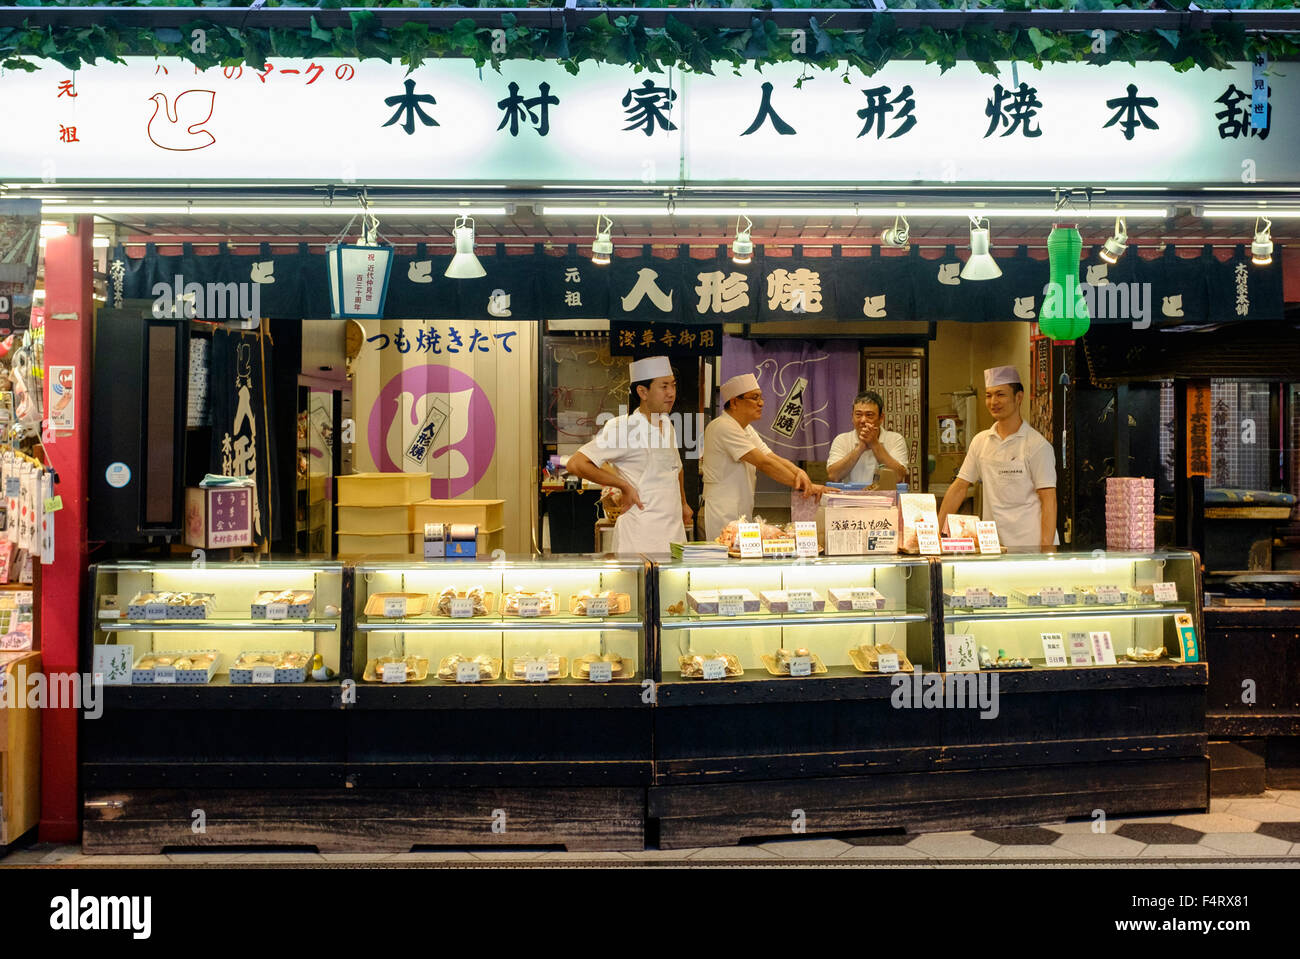 Traditional food shop on Nakamise Shopping Street at Sensoji Shrine in Asakusa district of Tokyo Japan - Stock Image